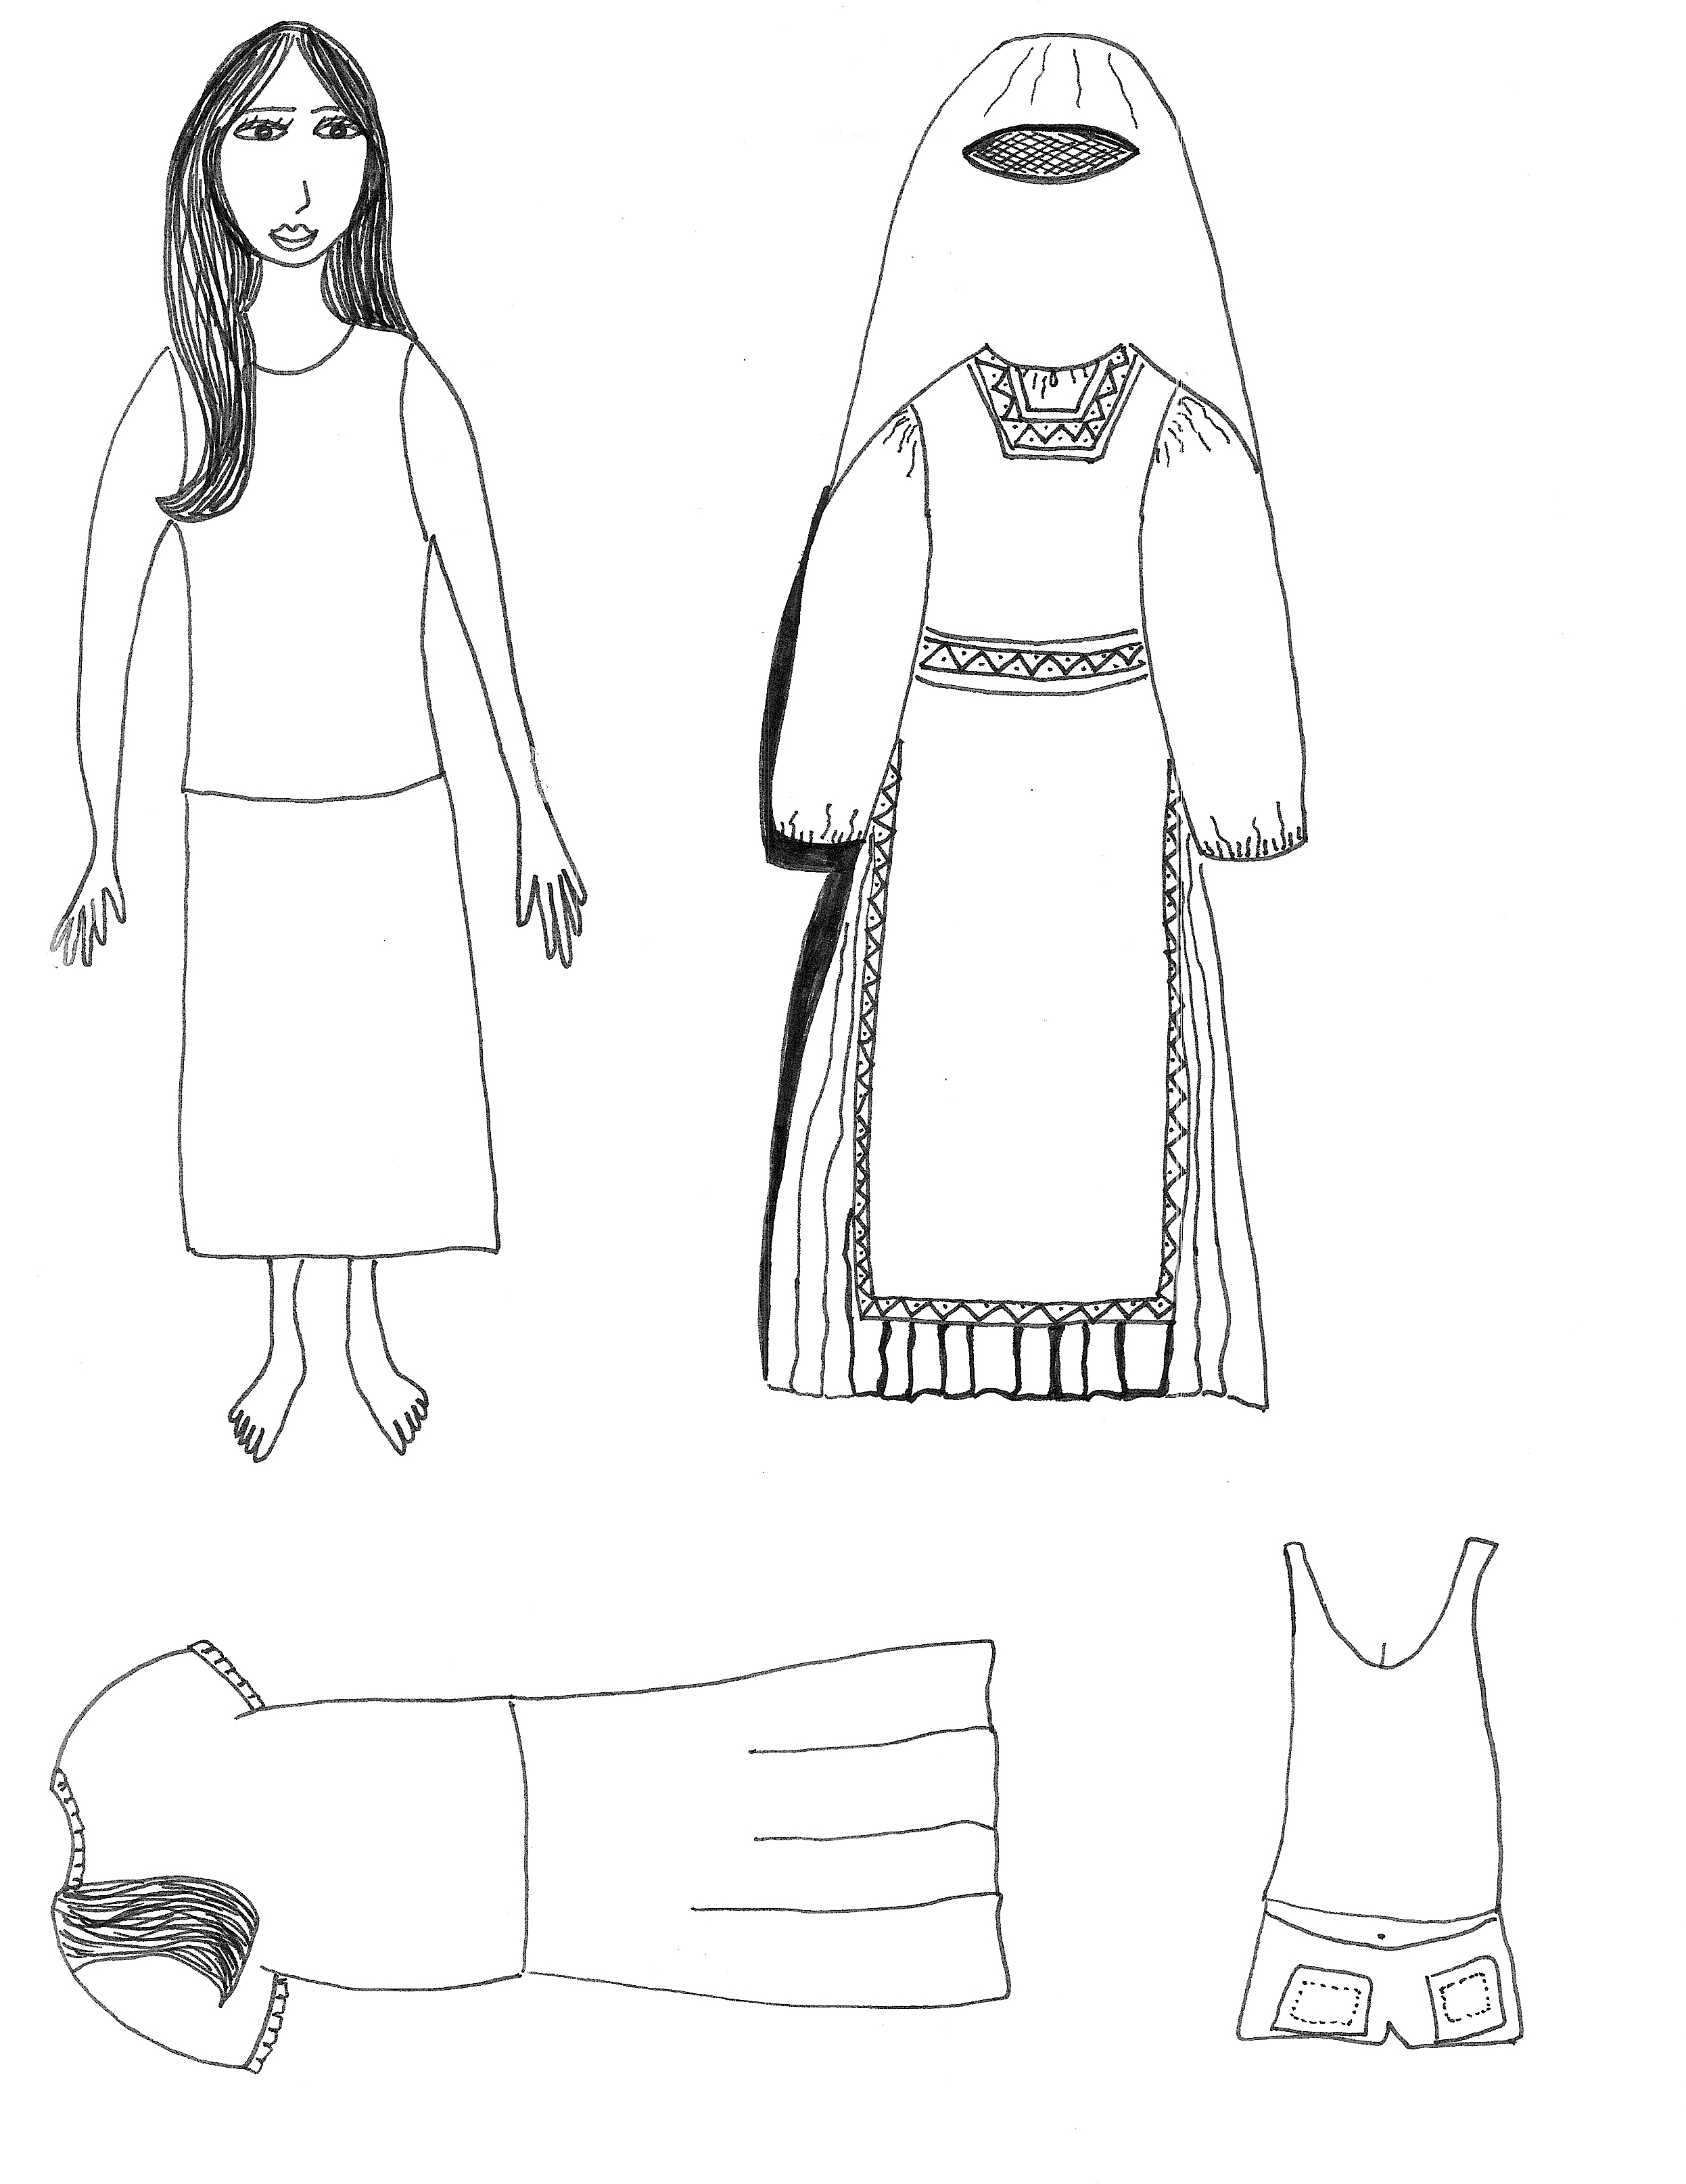 Clip Art Isaac And Rebekah Coloring Pages paper doll craft aunties bible lessons leah modesty wkst